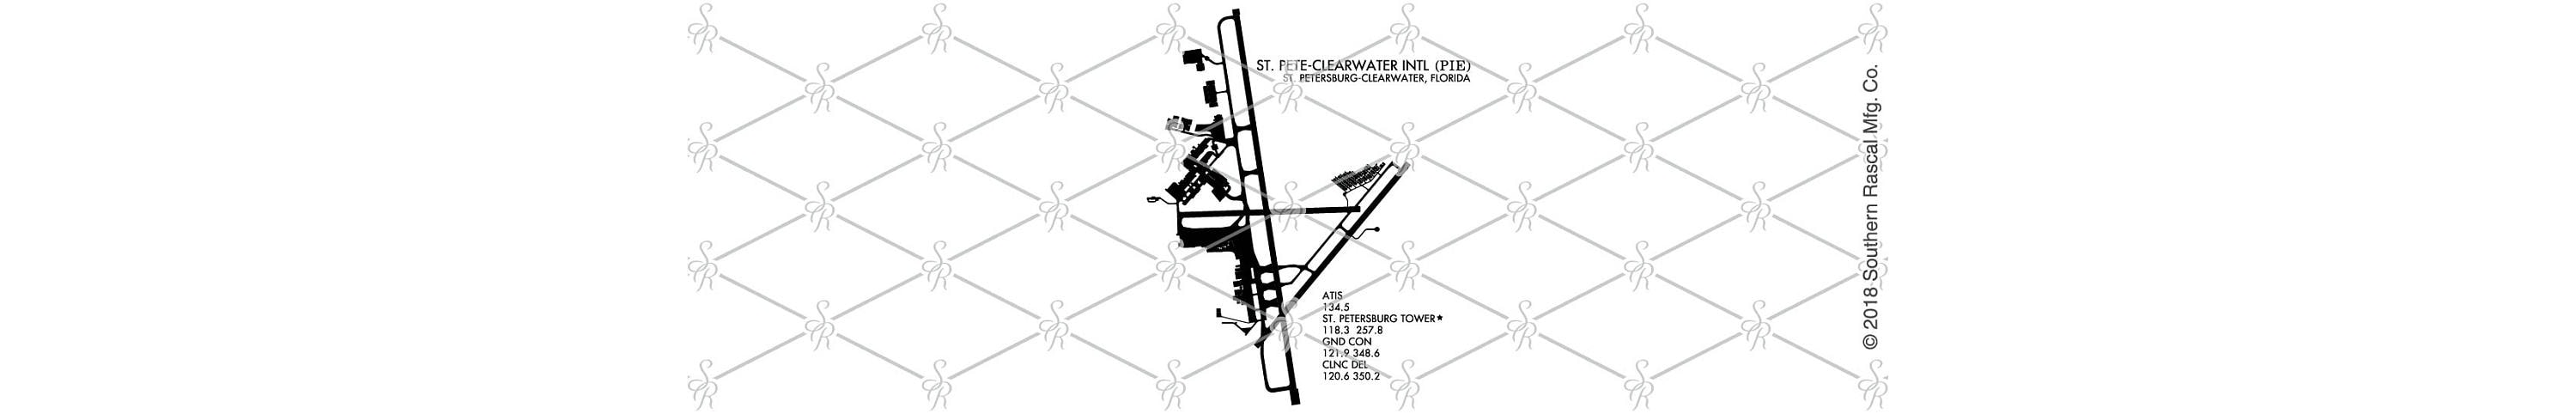 St Peteclearwater International Airport Pilot Map Whiskey Glass Gift Still Diagram